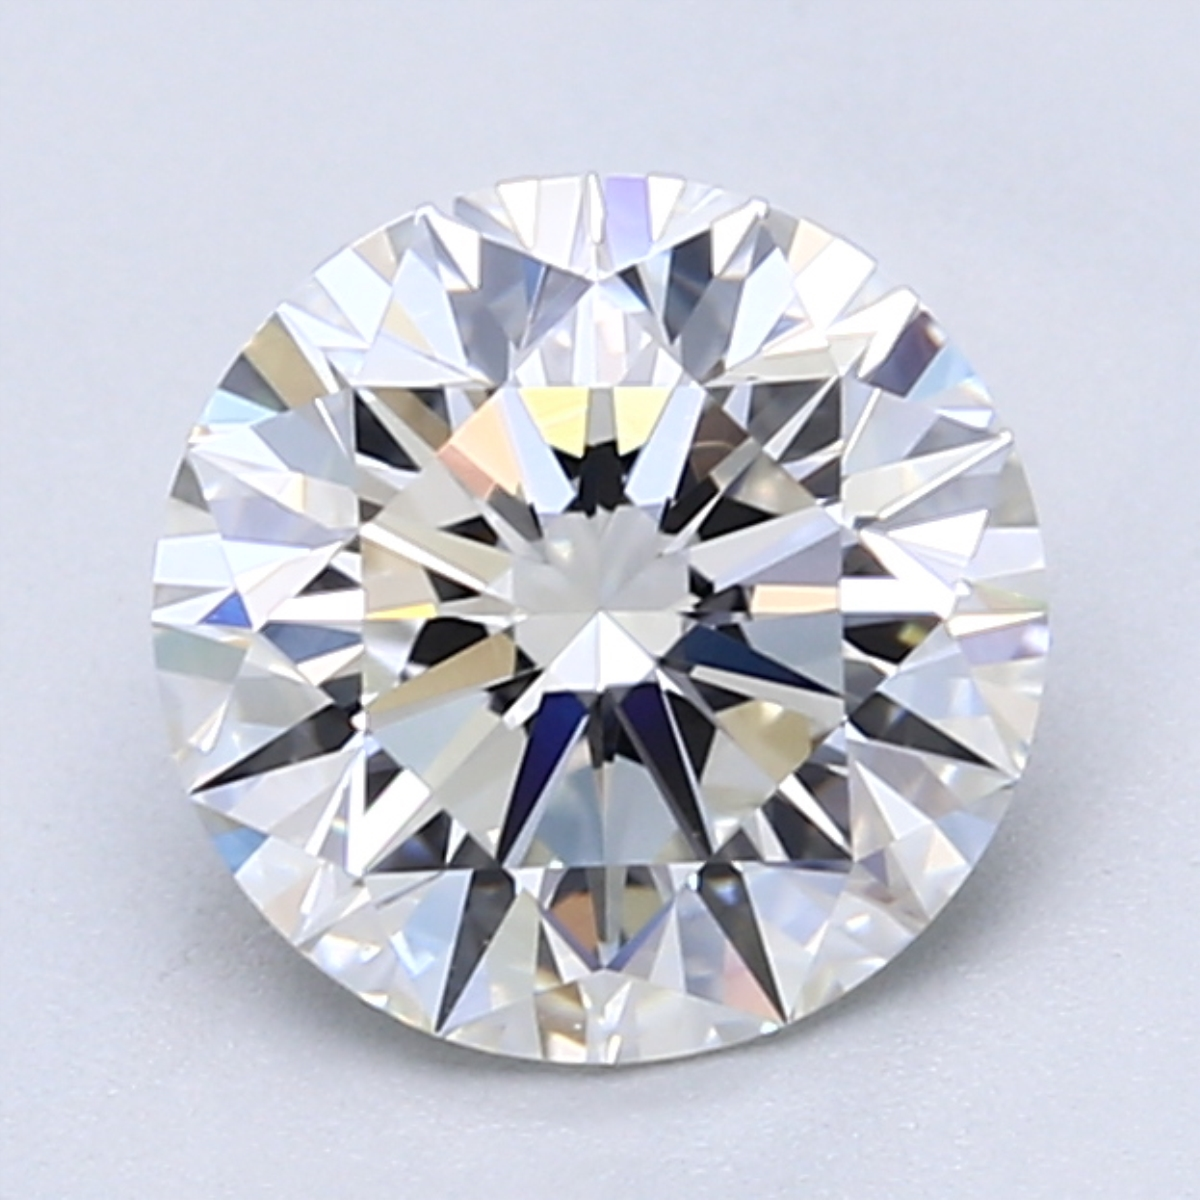 2 Carat G Color Diamond